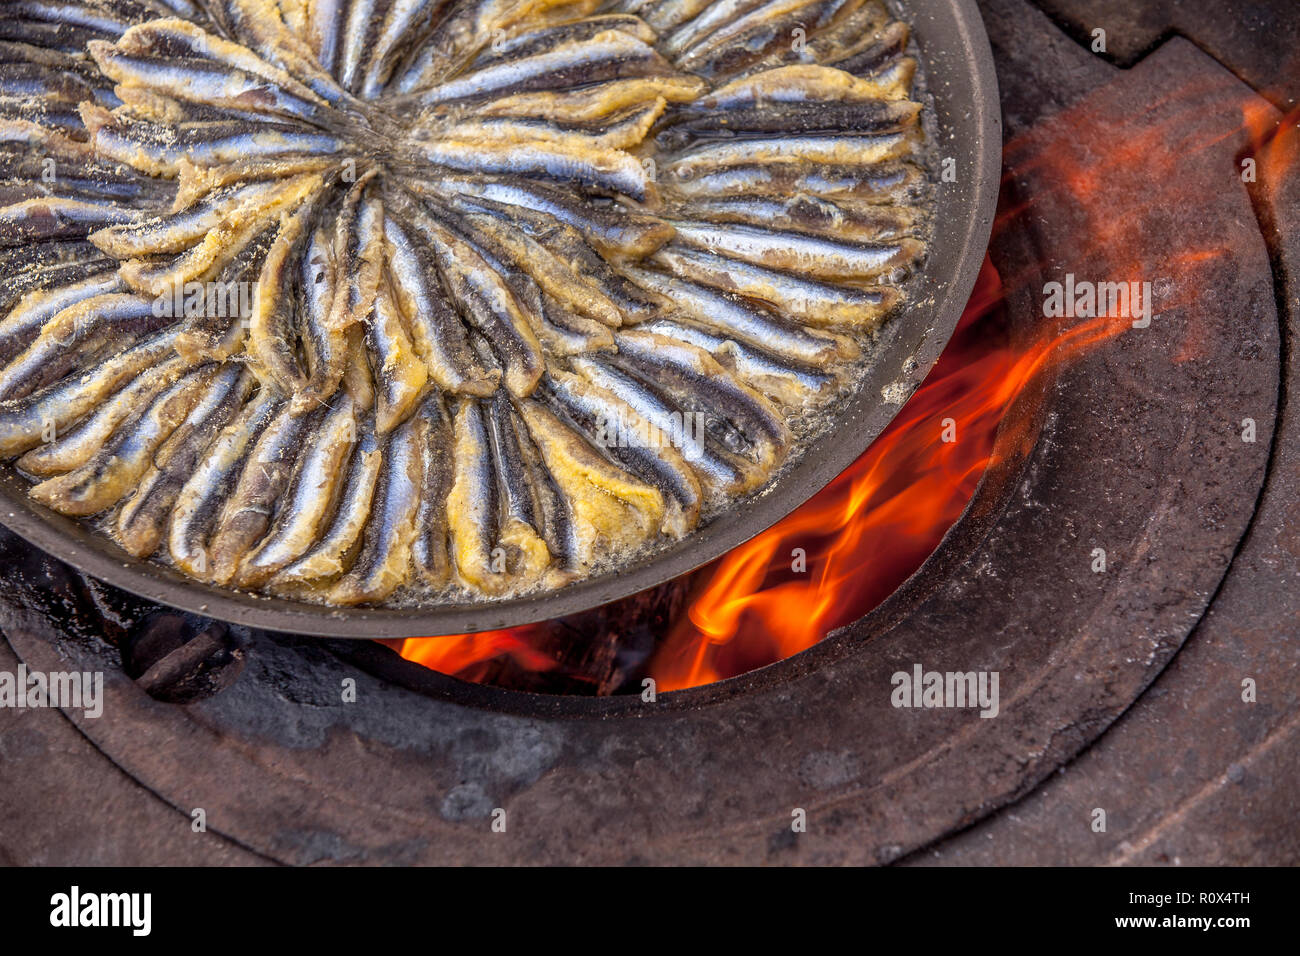 fish in frying pan, on old stove closeup - Stock Image